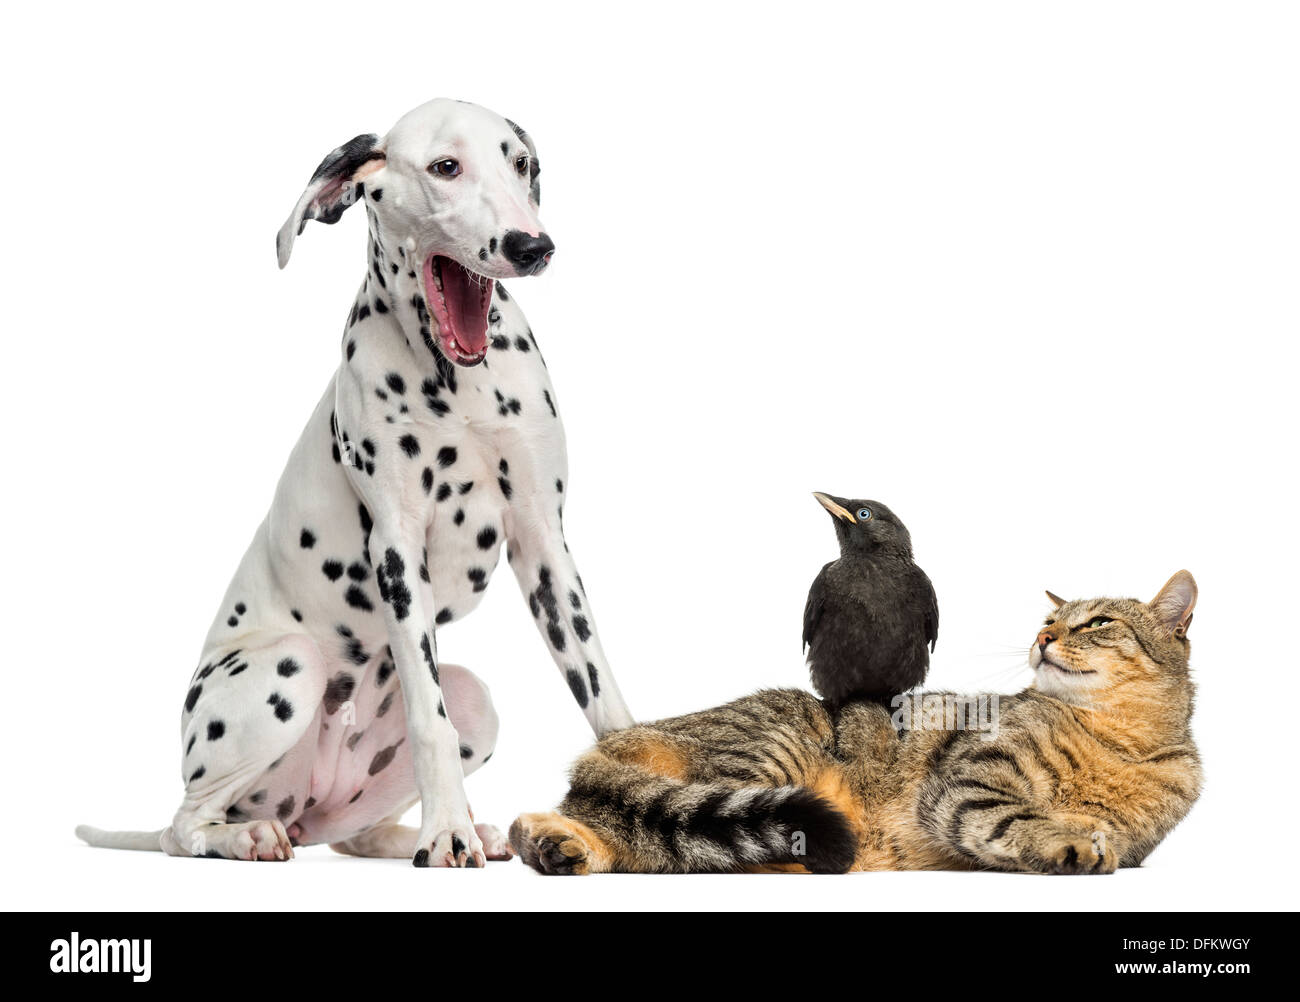 Cat and Jackdaw looking at a Dalmatian yawning, against white background - Stock Image